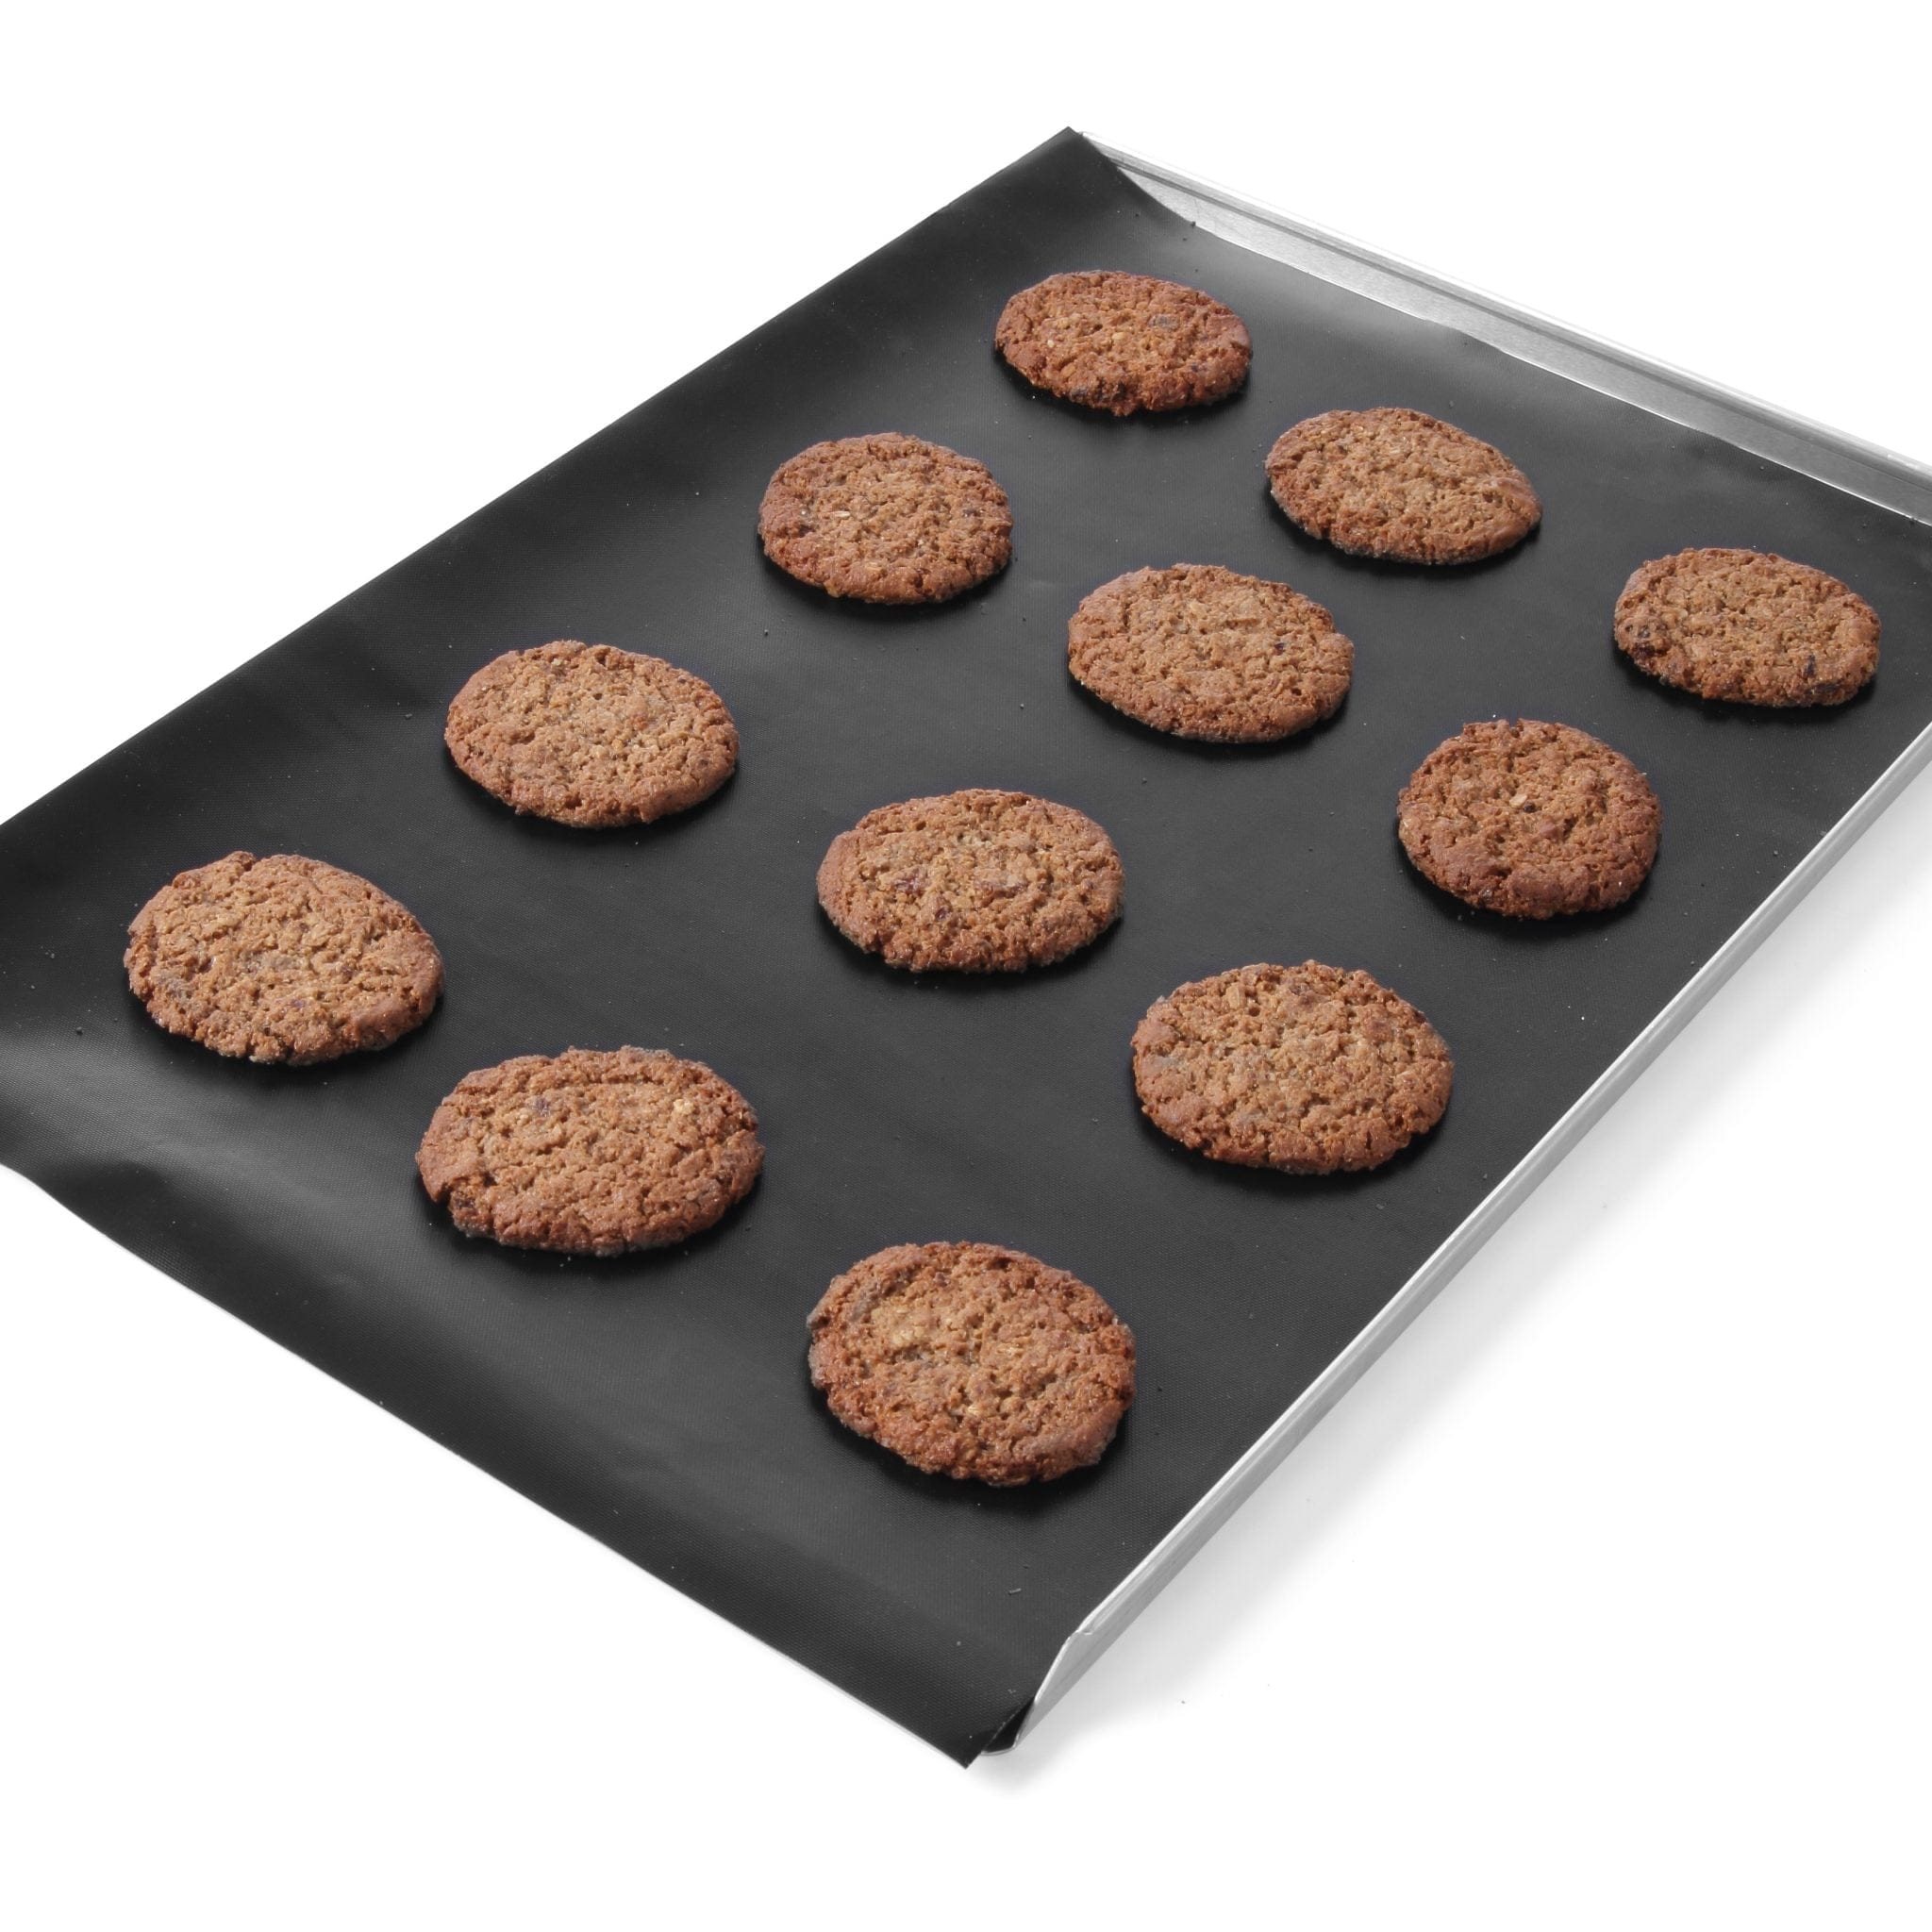 Reusable Baking Sheet Liner - Non-stick PTFE Oven Liner for Oven, Microwave, Baking Parchment Sheets Cookie Mat